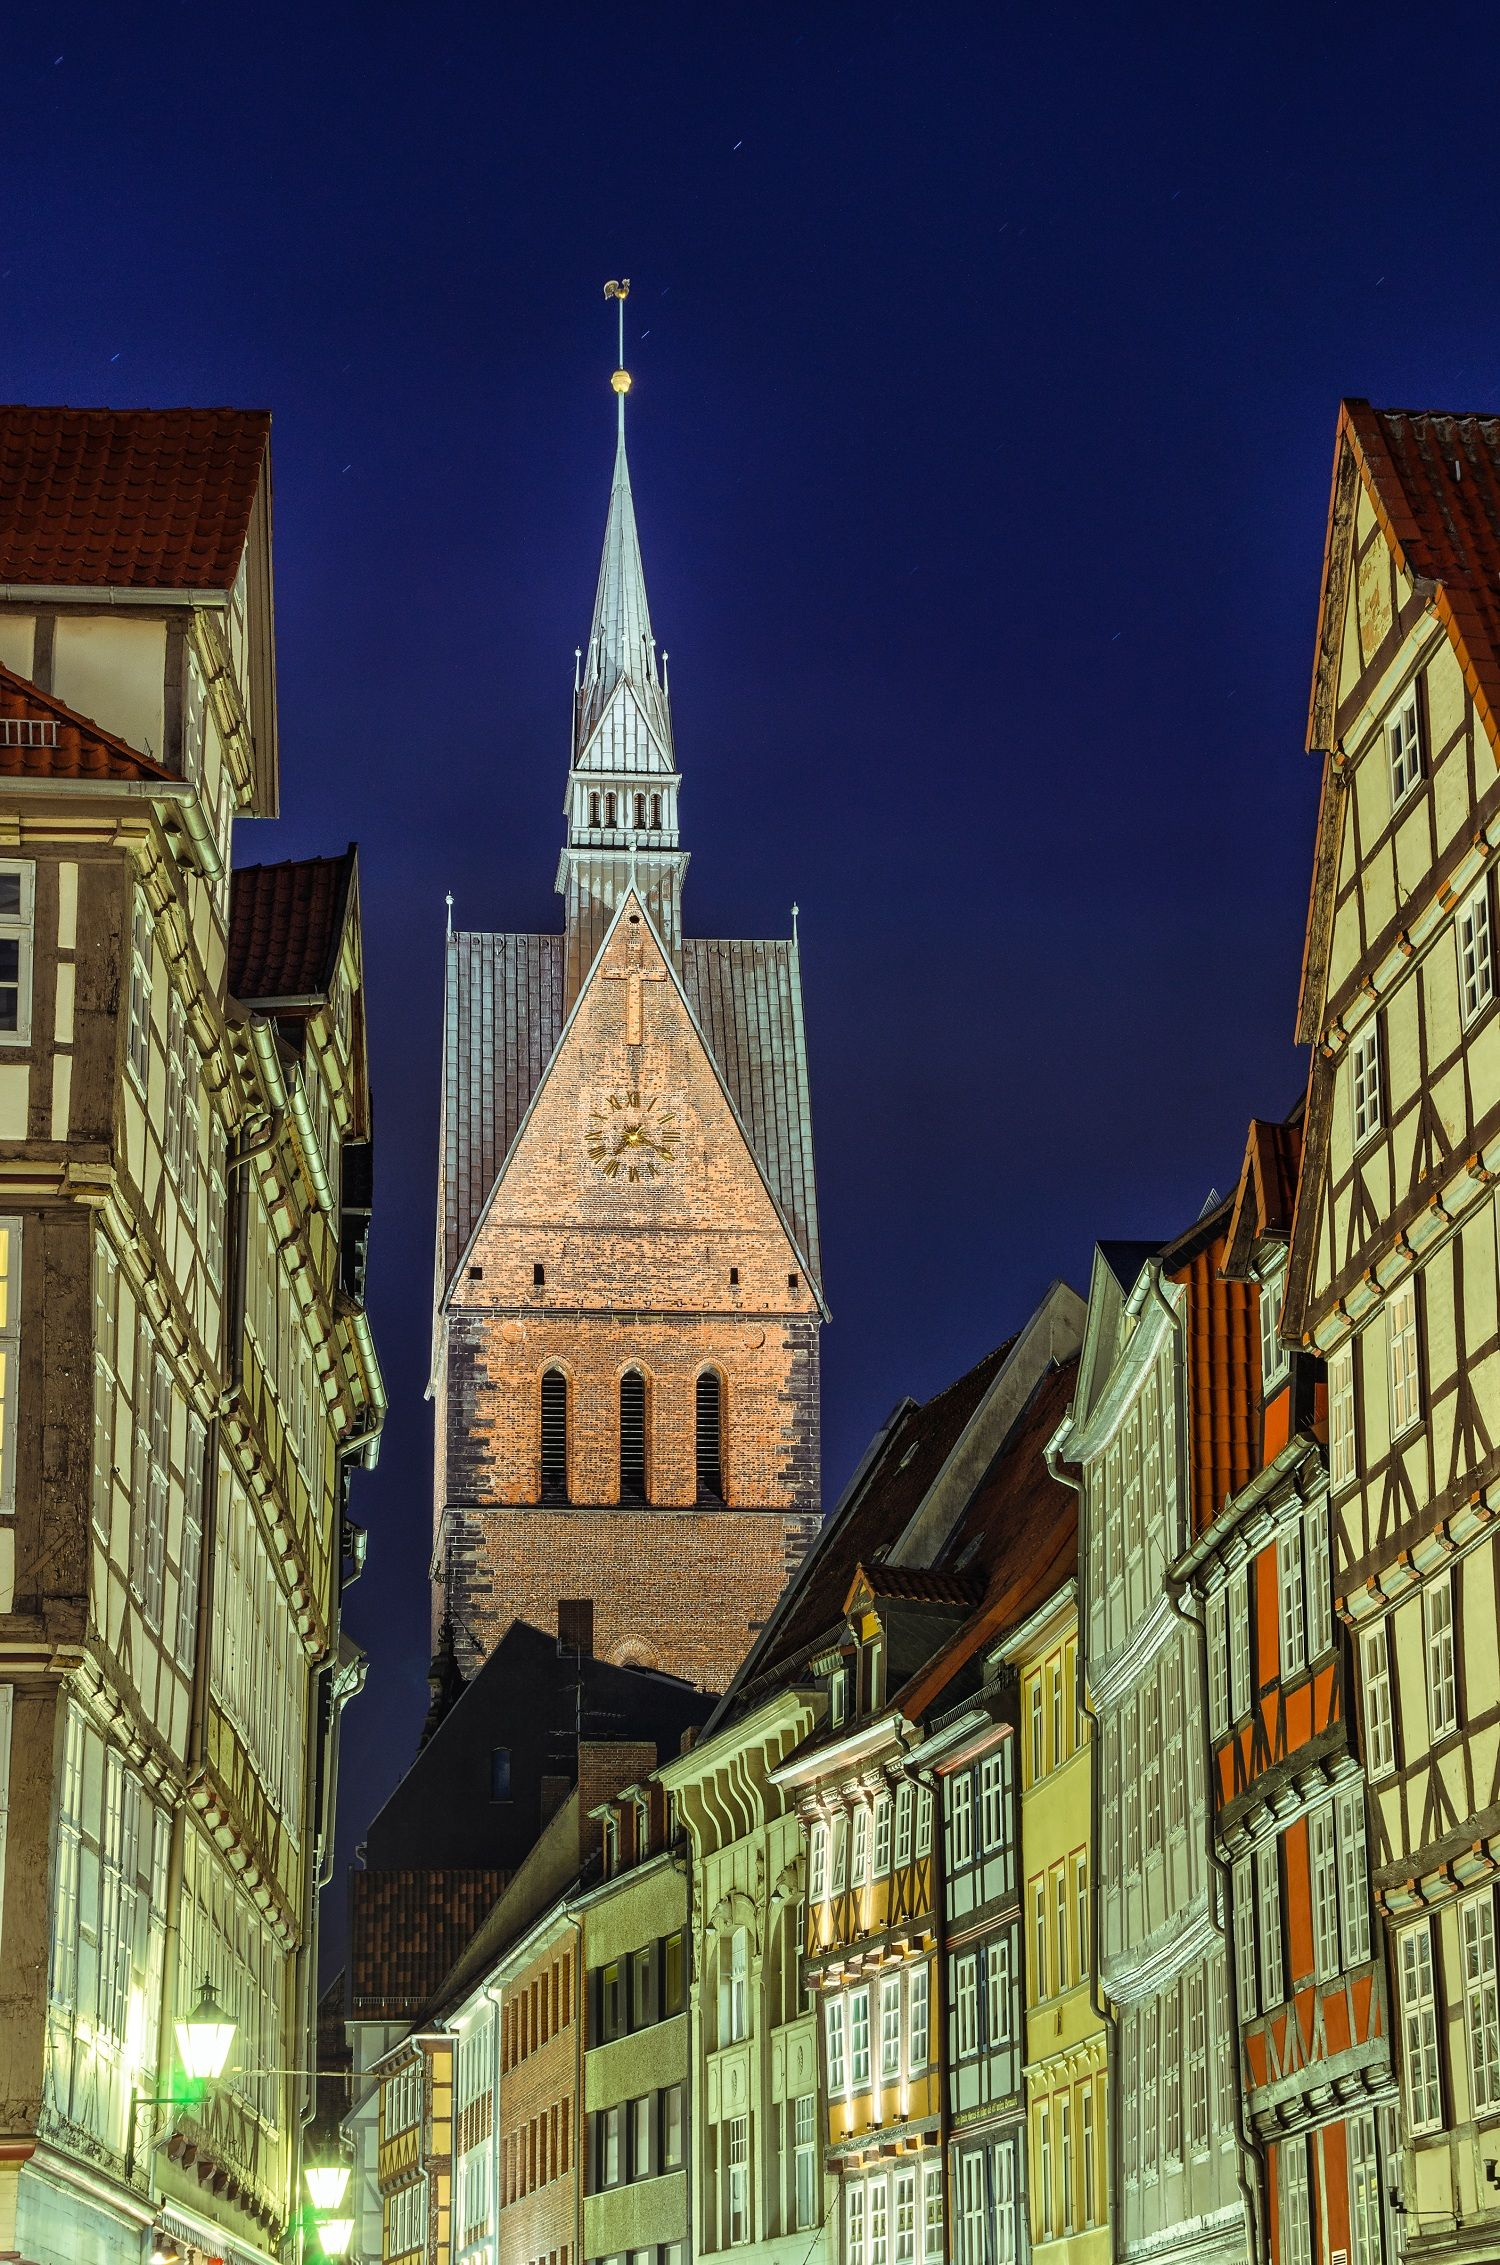 Marketplace Church (Marktkirche) and old halftimbered